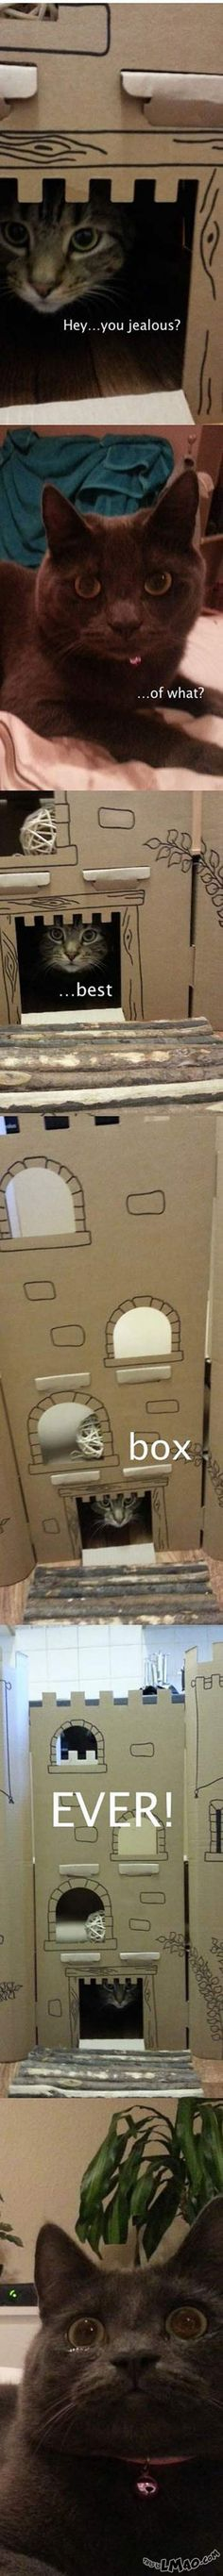 Lawl.. you will love this! Cat castle | #box, #cat, #castle, #funny